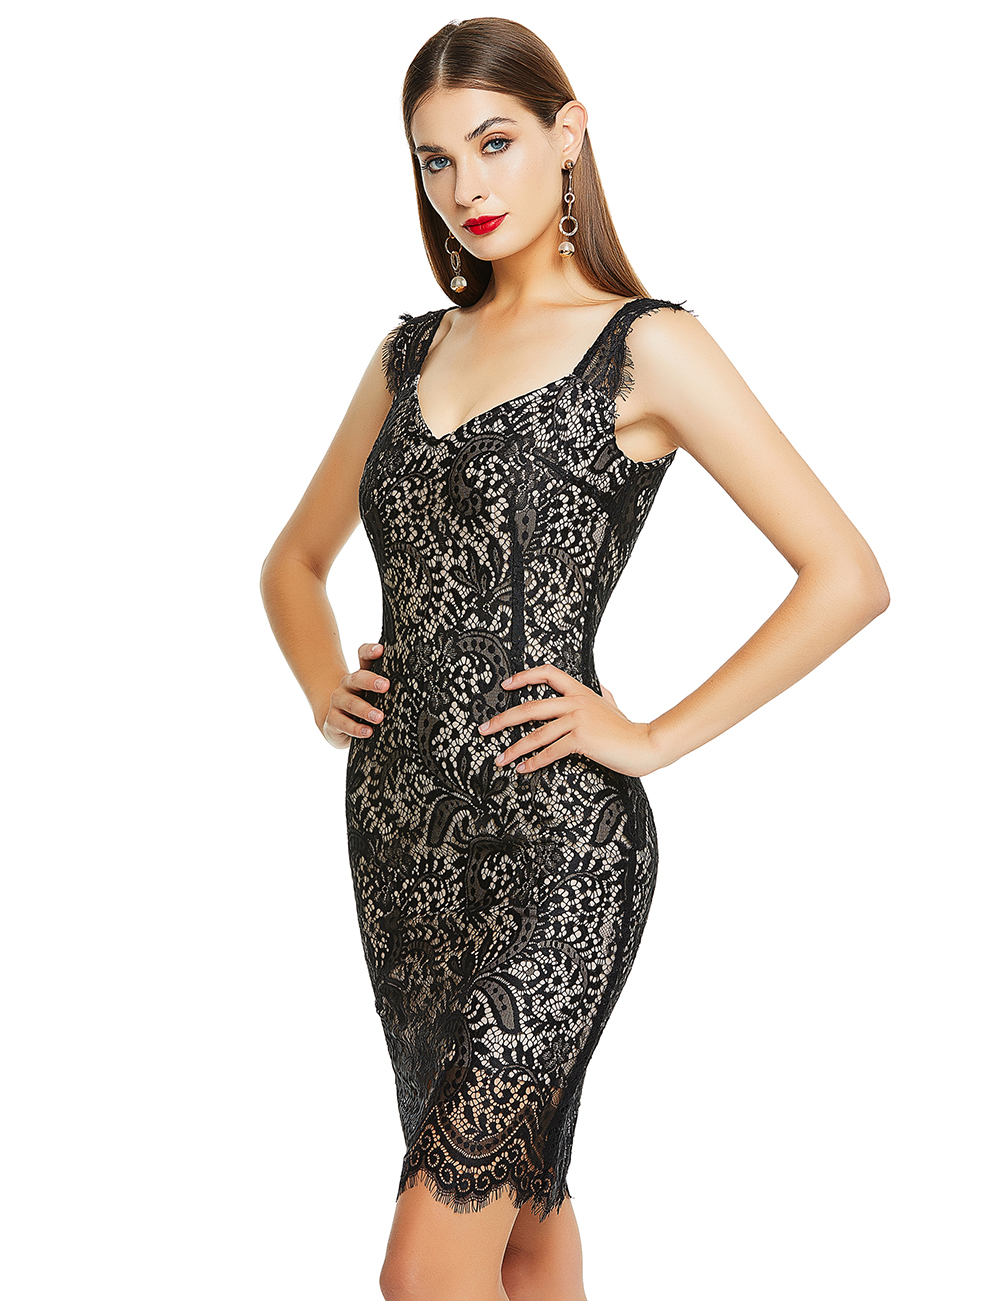 //cdn.affectcloud.com/hexinfashion/upload/imgs/Dress/Bandage_Dress/VZ191038-BK1/VZ191038-BK1-201911015dbbe2fc92531.jpg